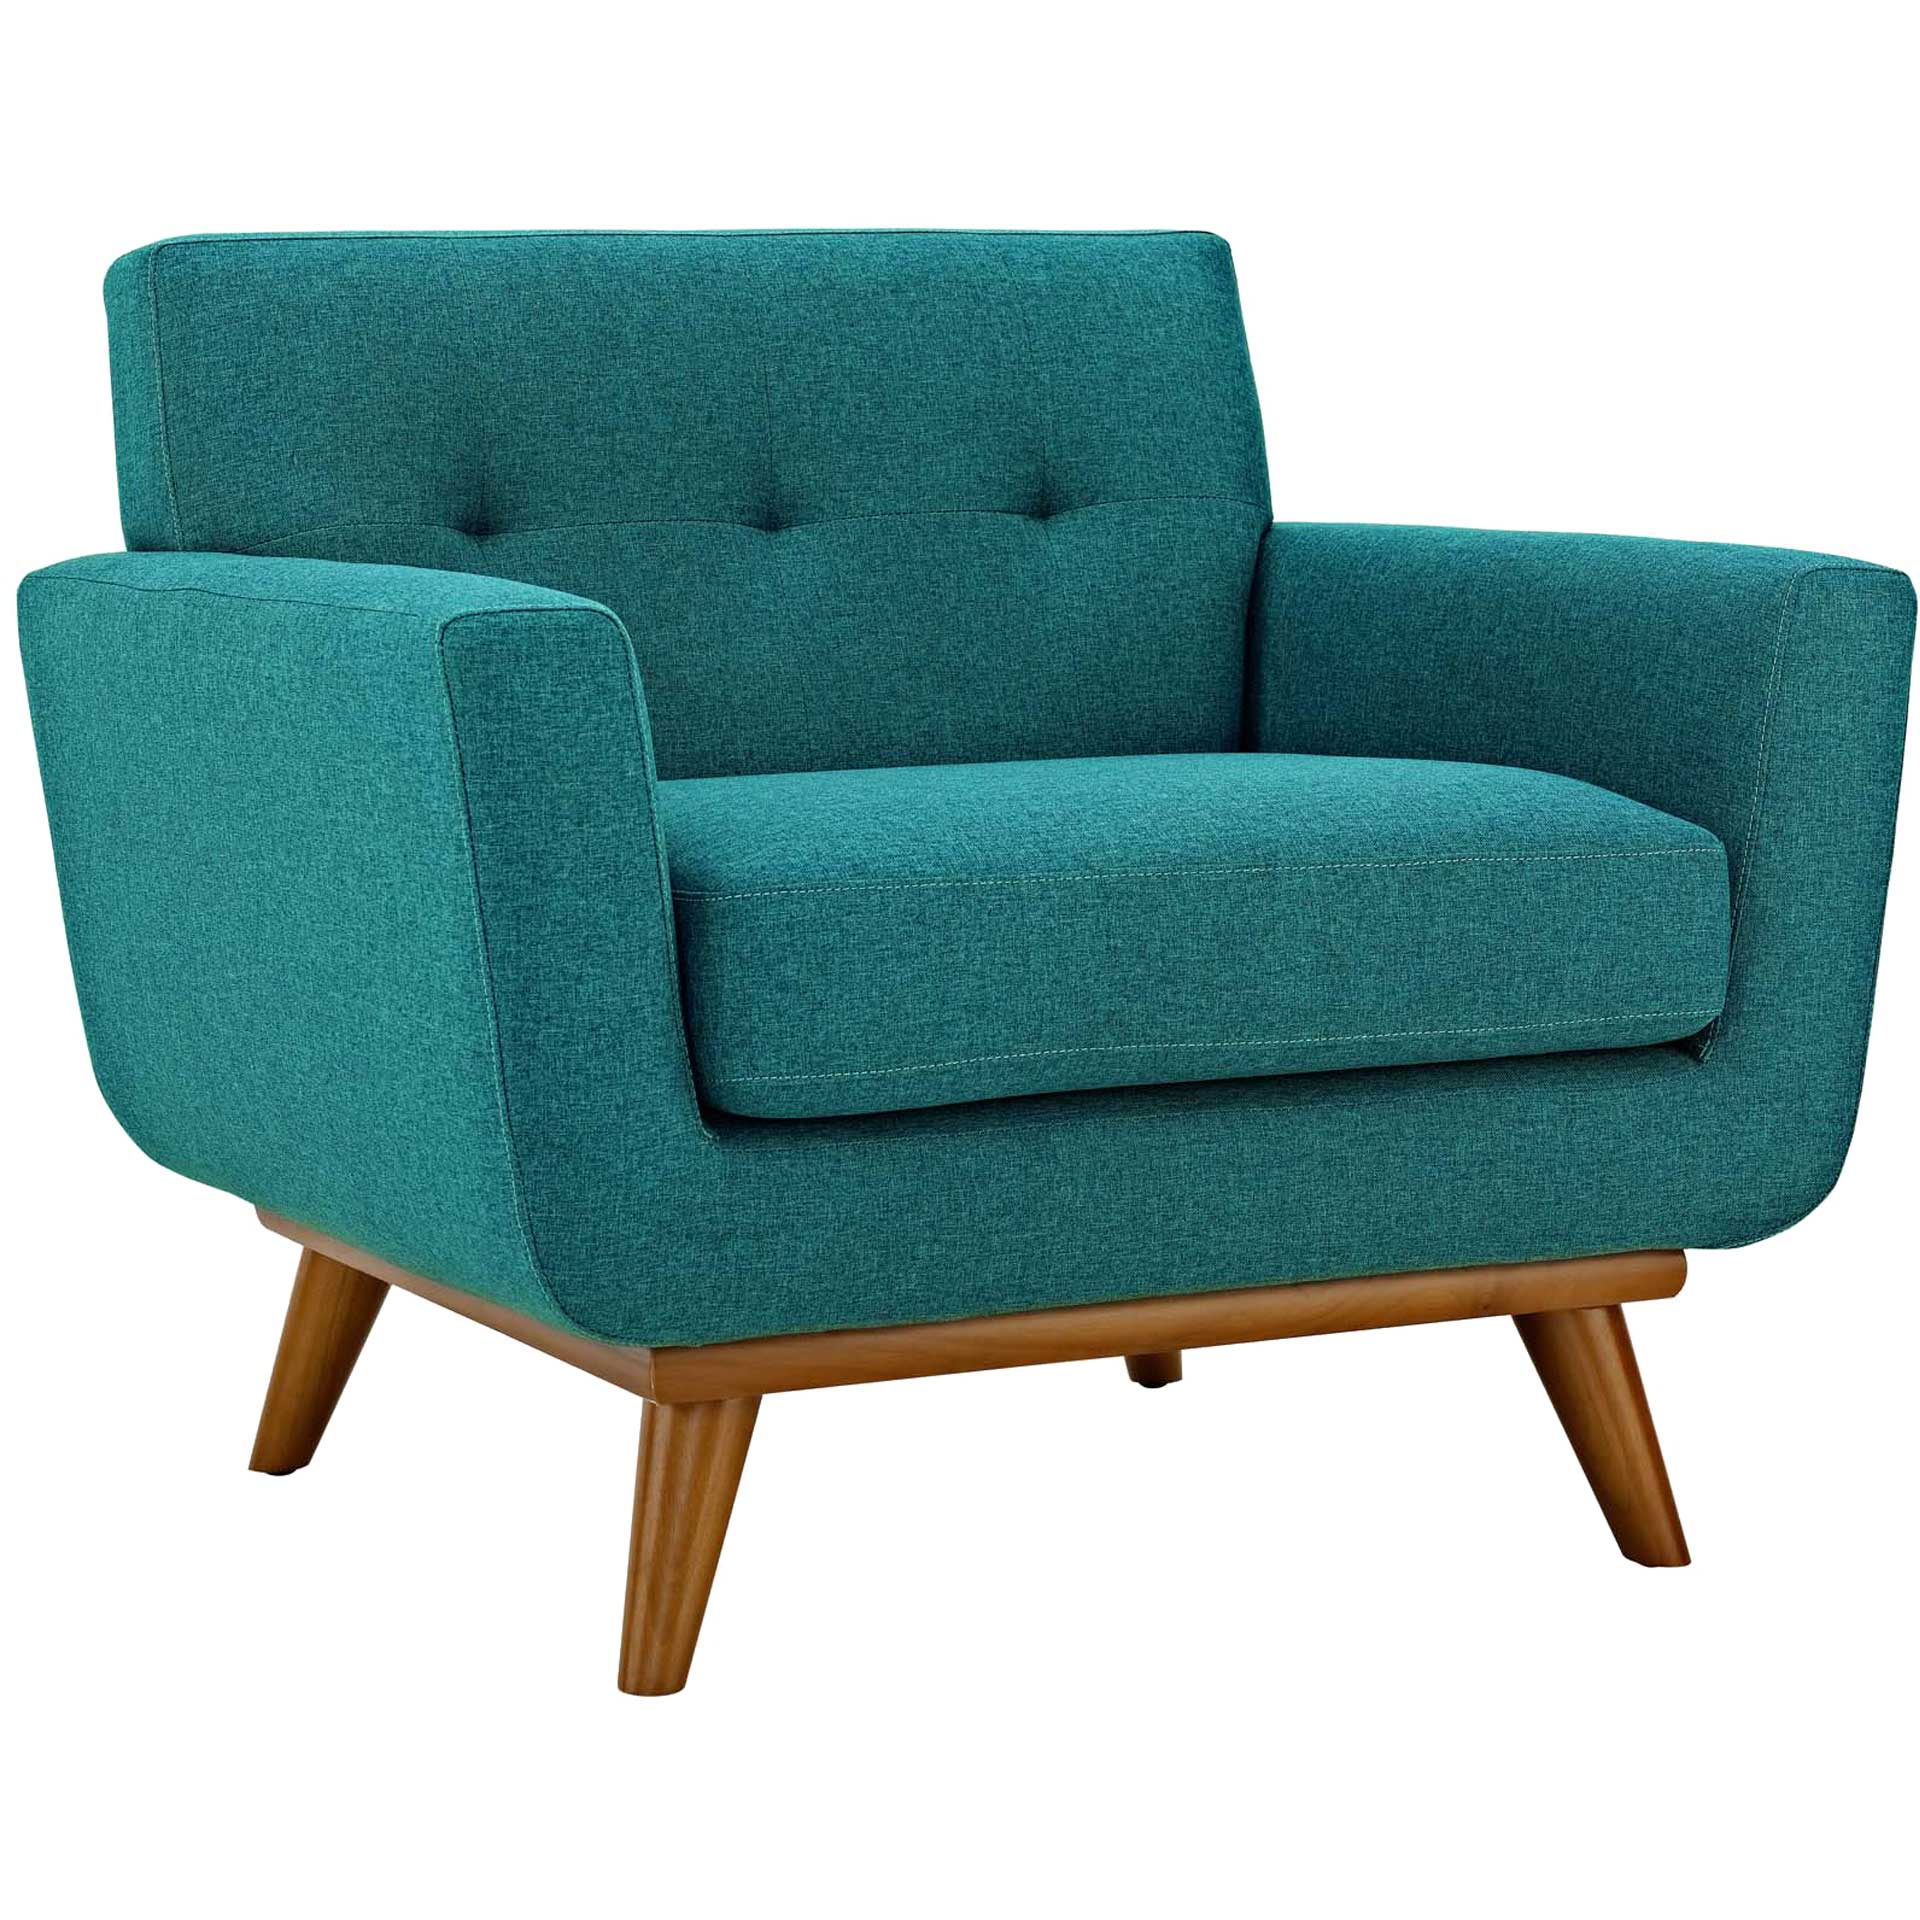 Emory Upholstered Armchair Teal